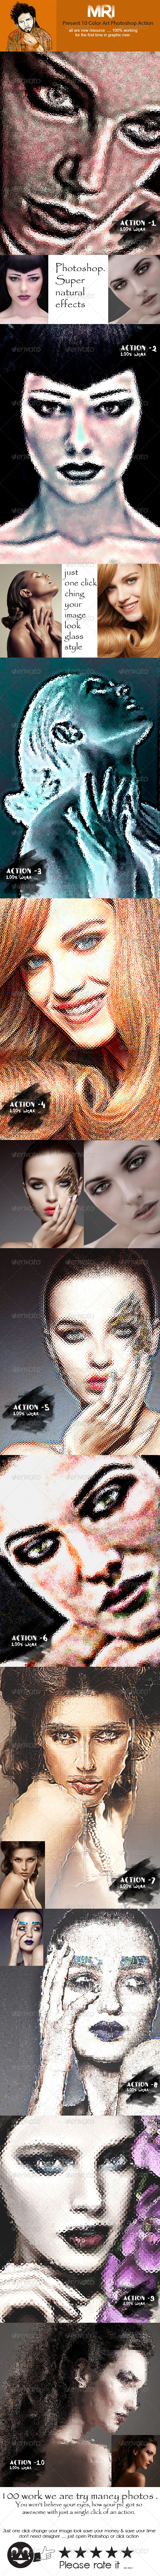 GraphicRiver 10 Glass Art Action 7842661